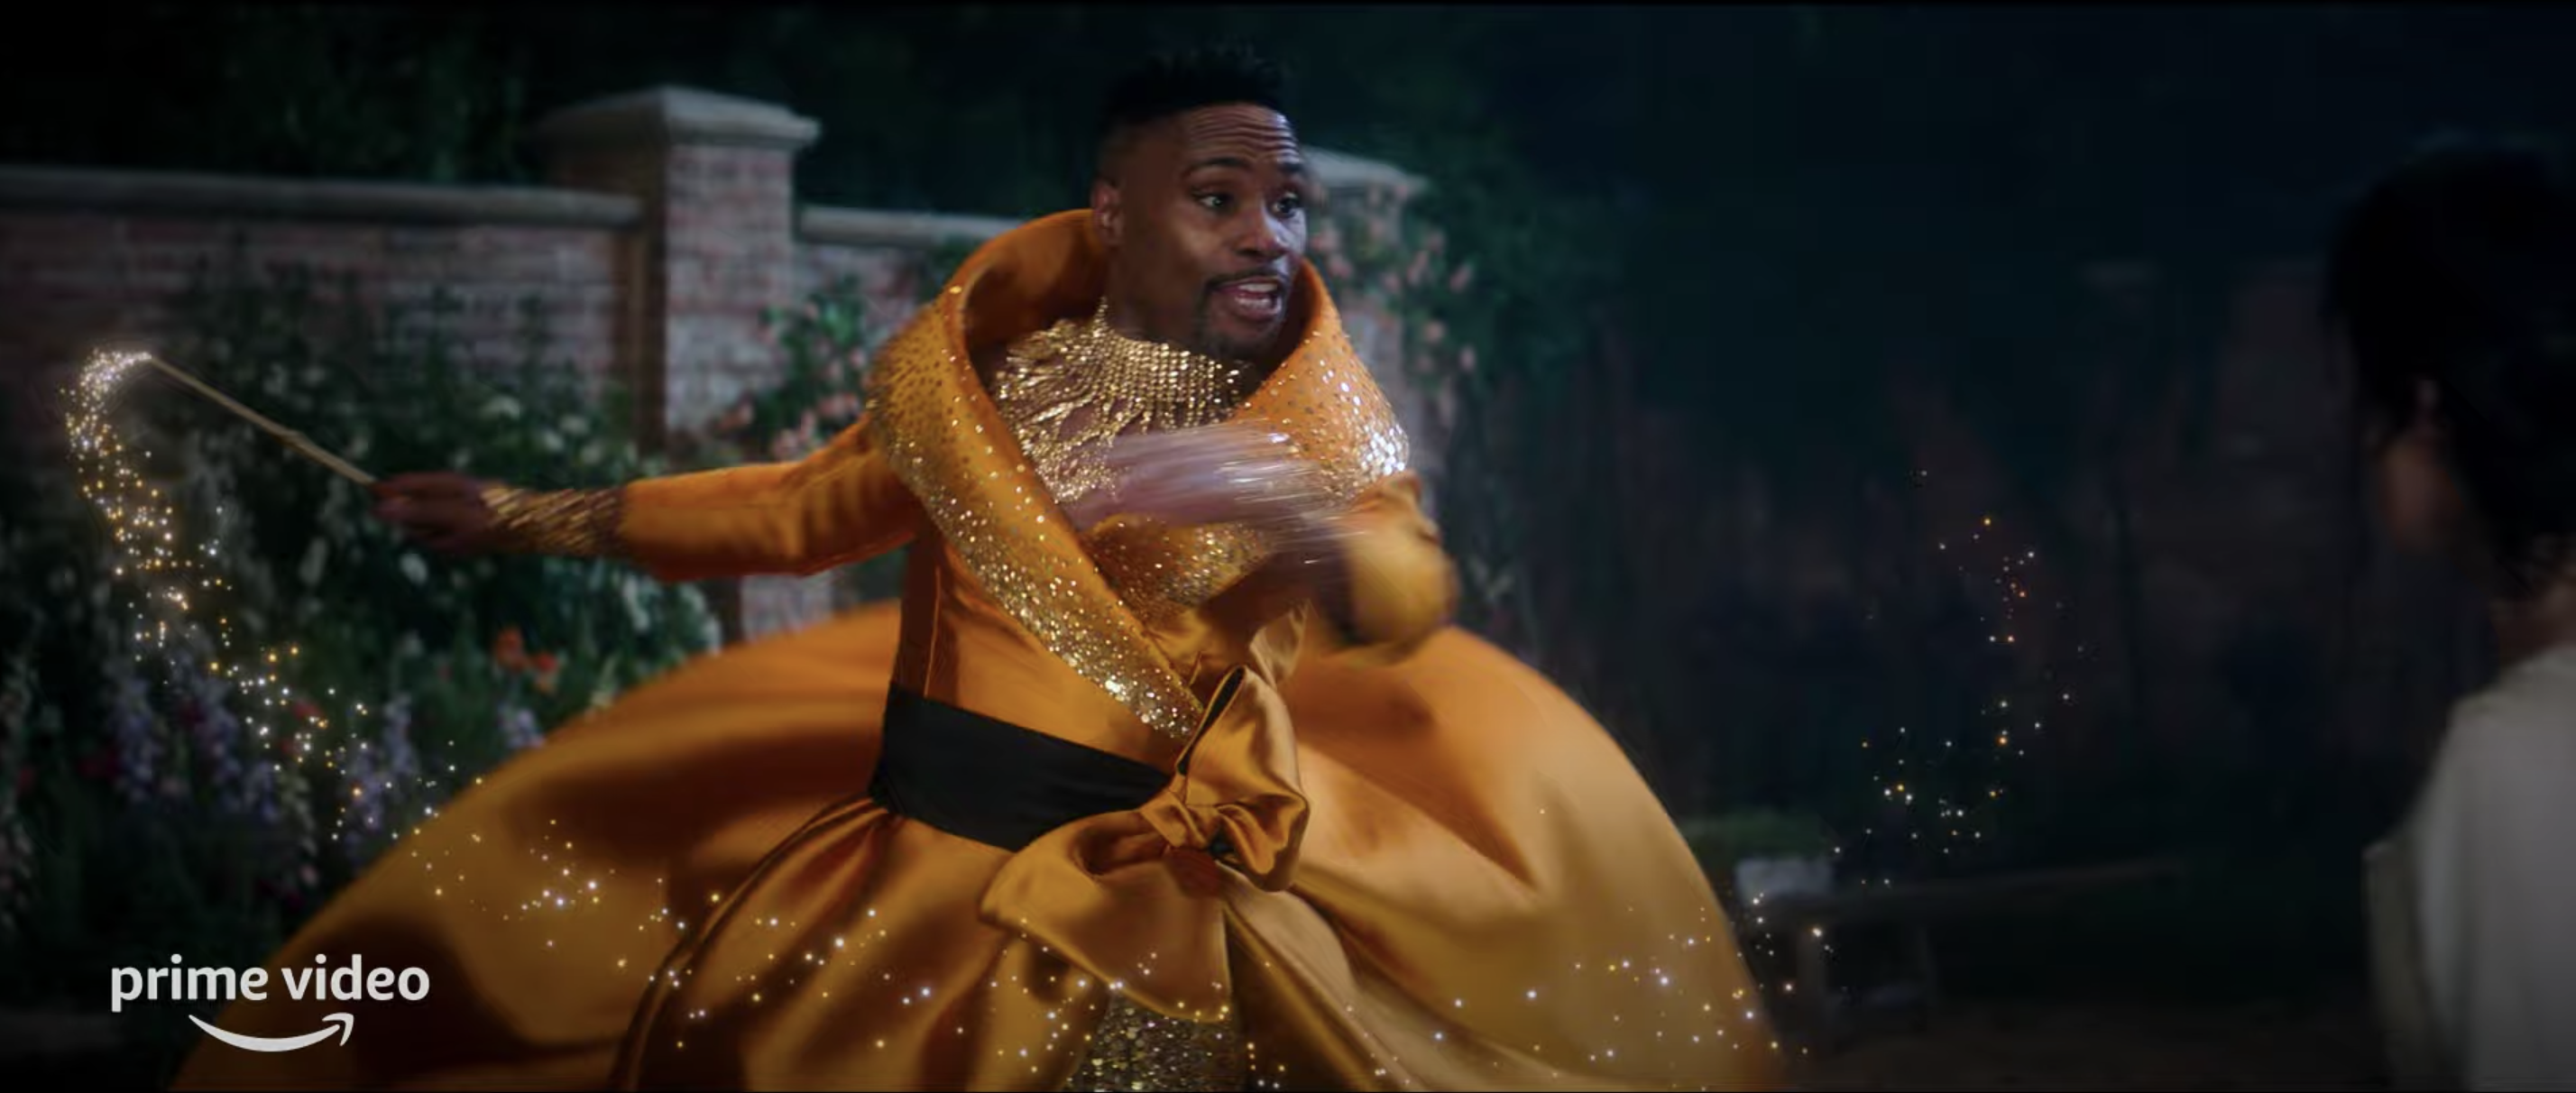 """Billy Porter spins with a wand as the Fairy Godmother on set of Amazon Prime Video's """"Cinderella"""""""